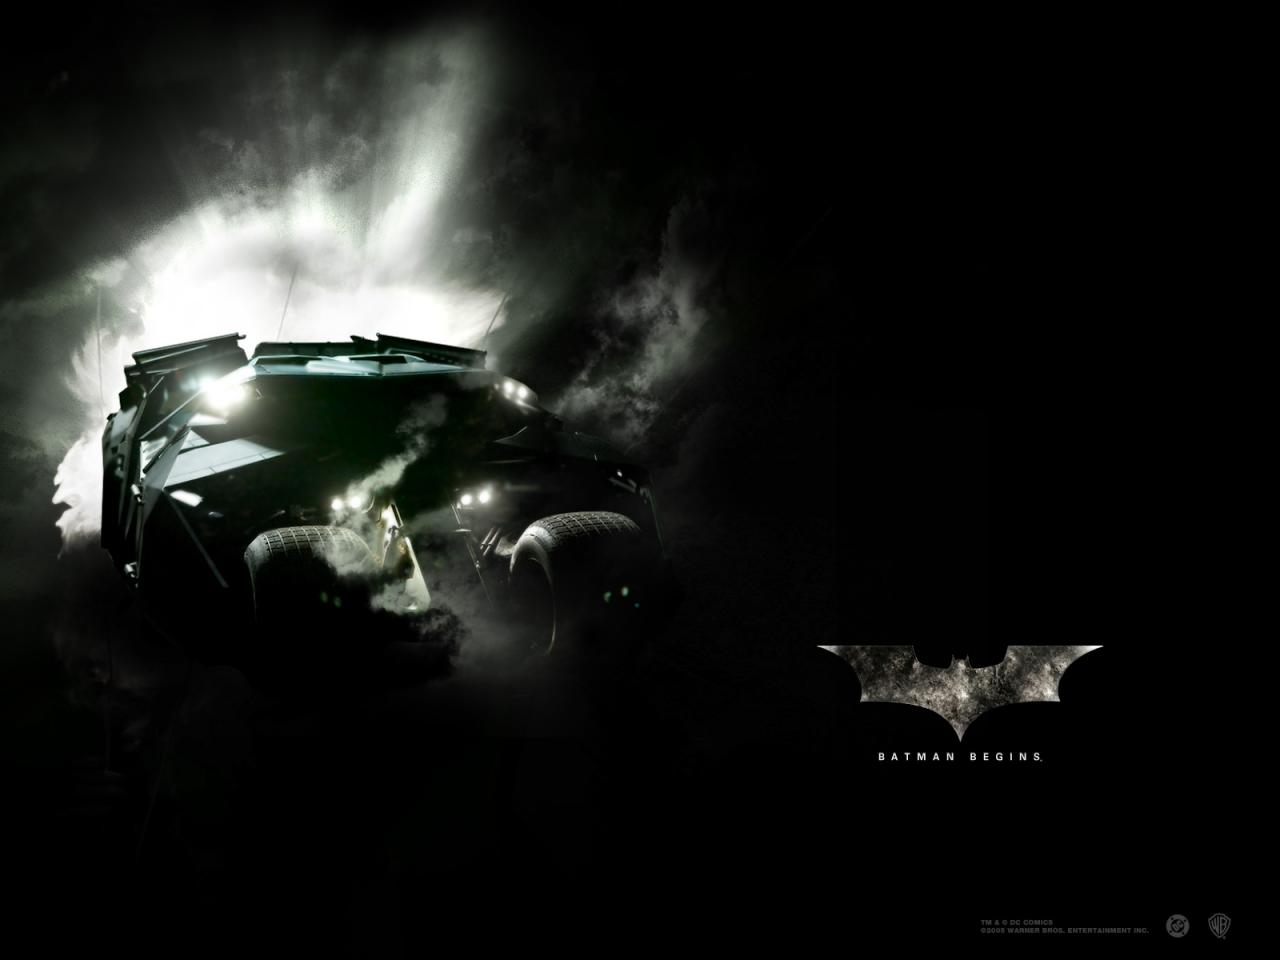 Wallpaper Batman begins Batmobil